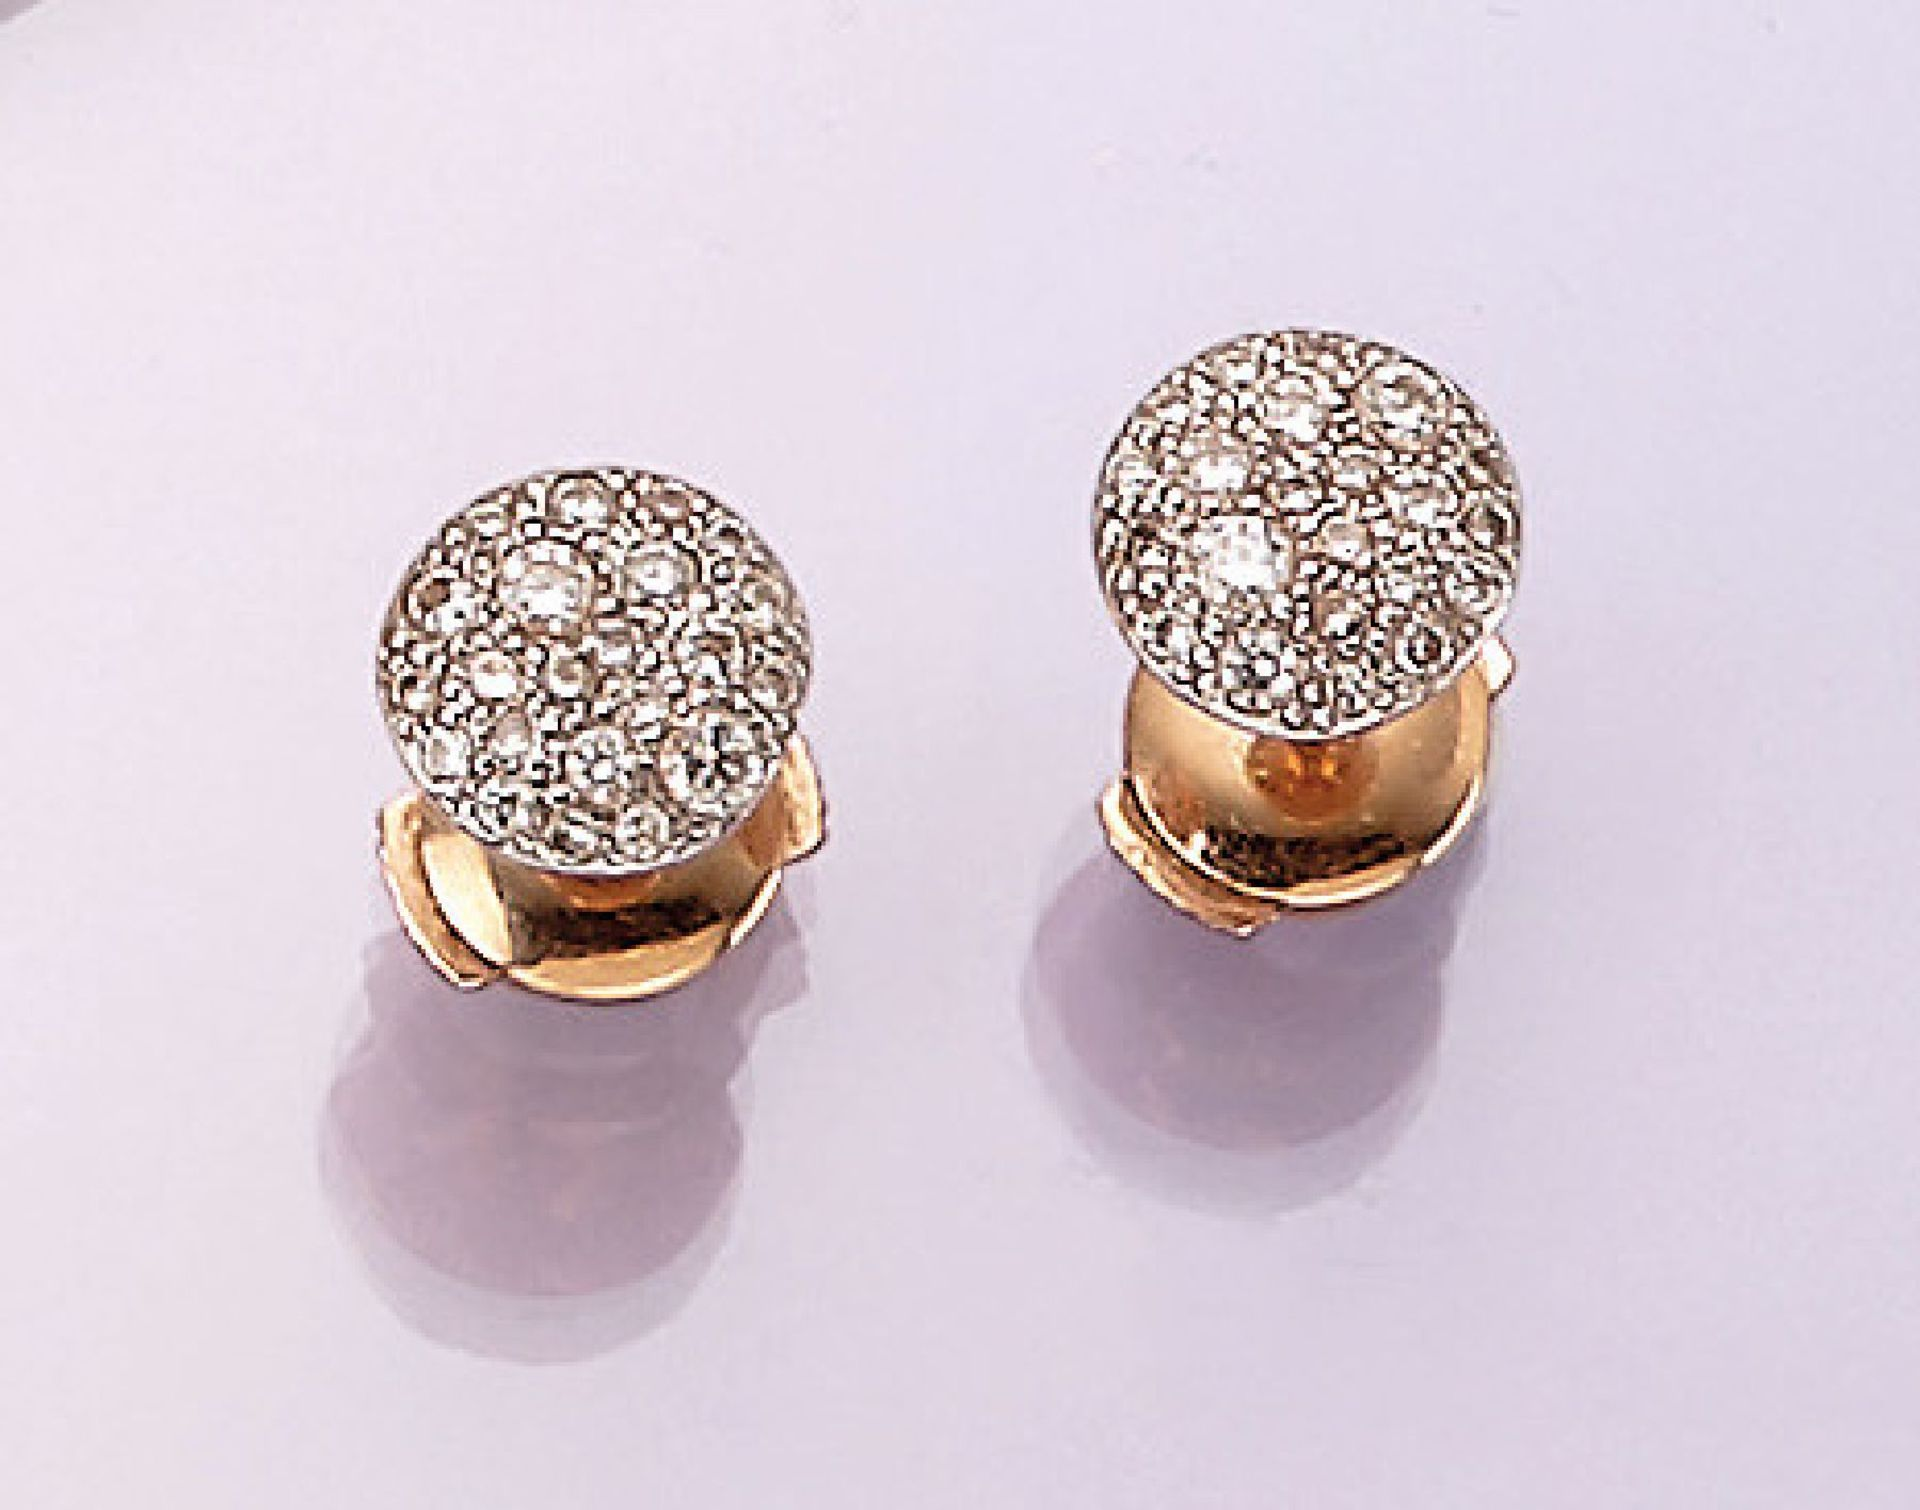 Los 31512 - Pair of 18 kt gold POMELLATO earrings with brilliants , RoseG/WG 750/000, brilliants total approx.